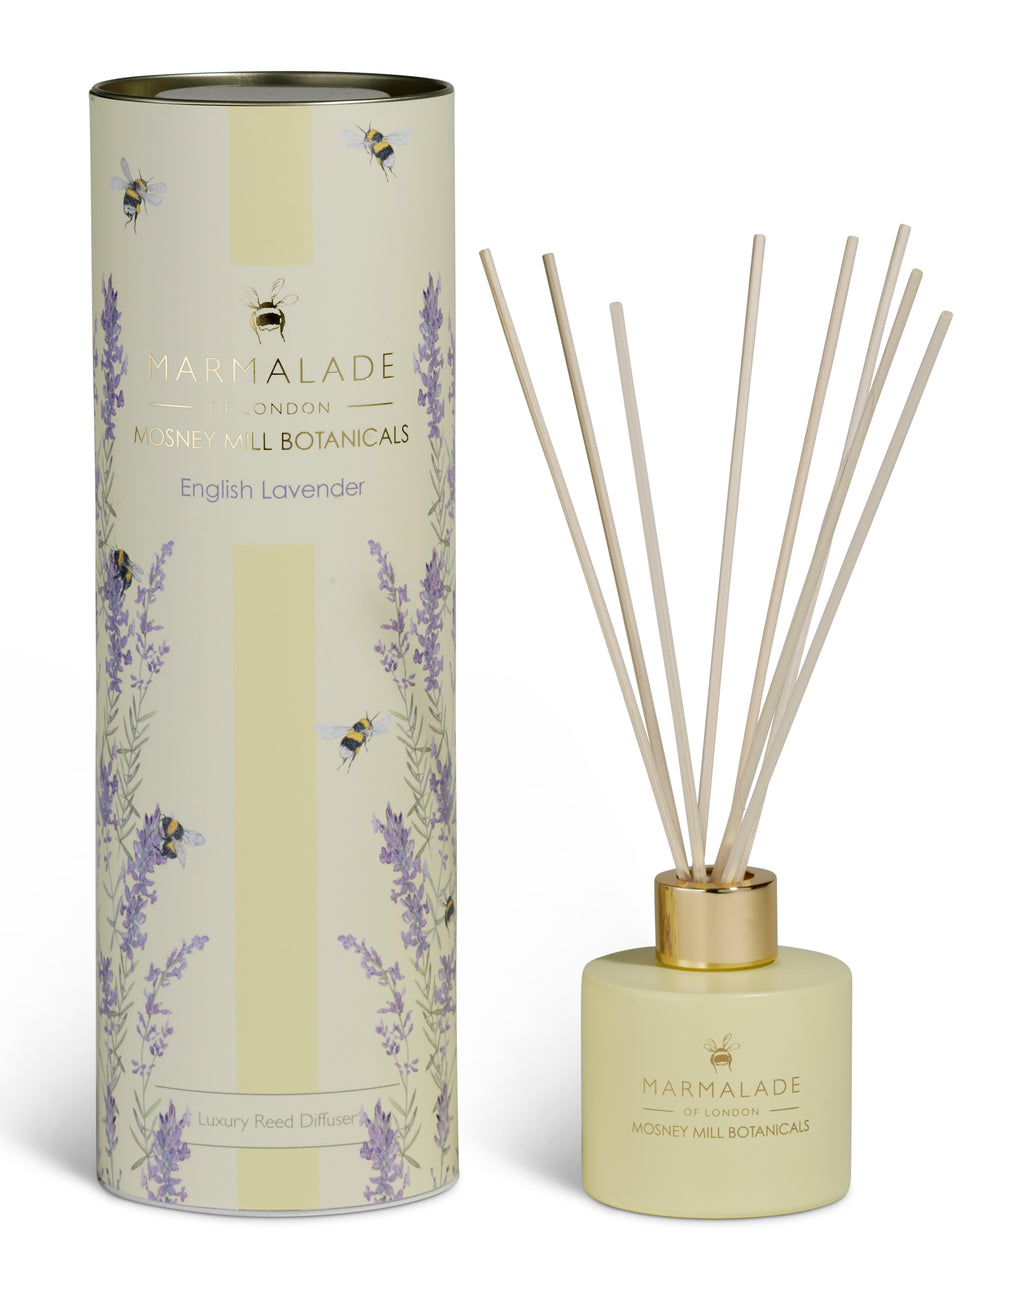 Marmalade of London Mosney Mill Botanicals English Lavender Reed Diffuser